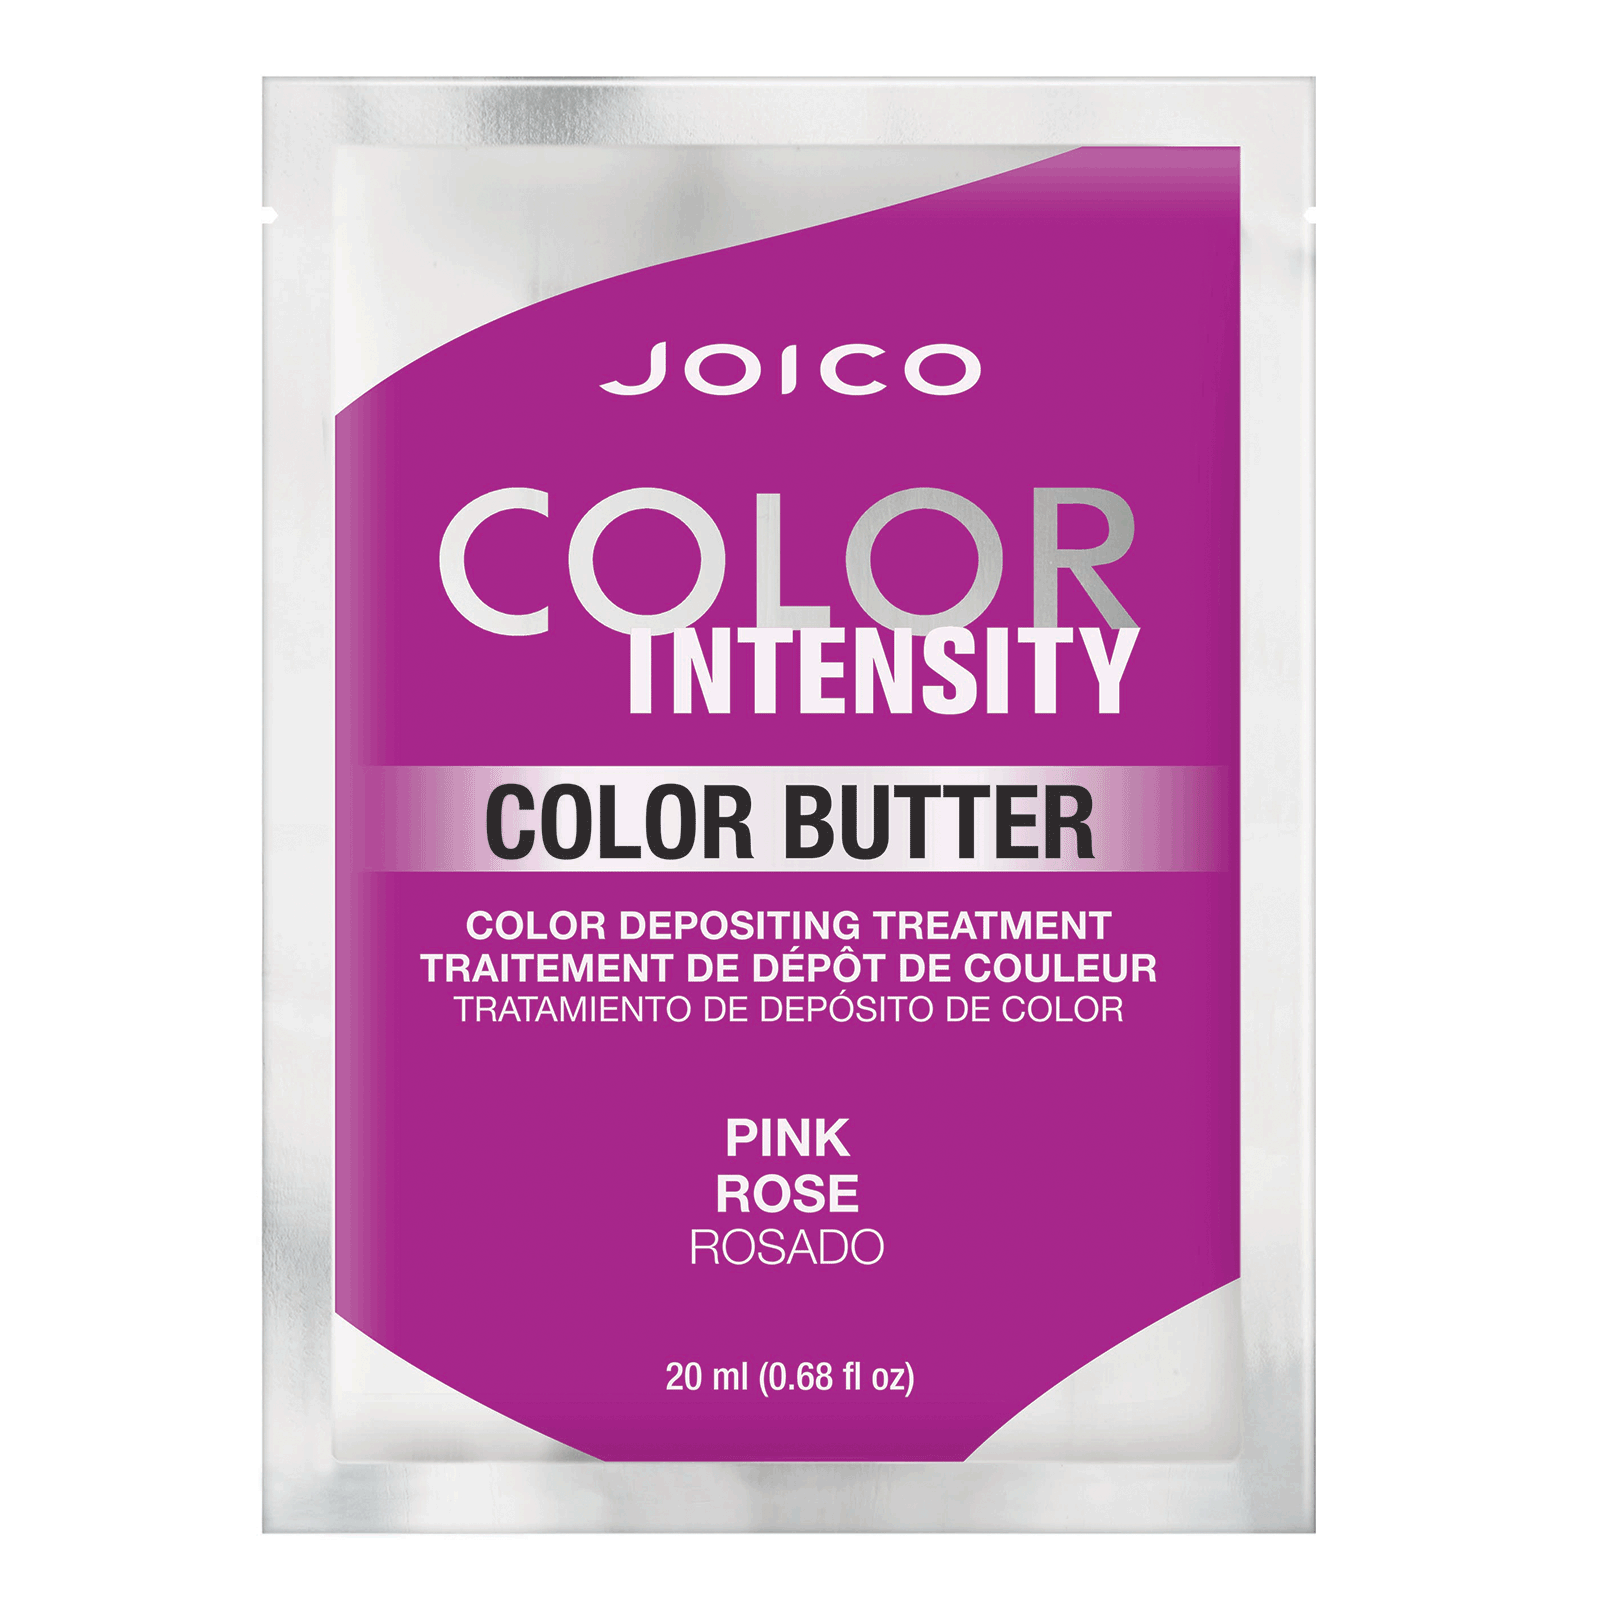 Color Intensity Color Butter Packette